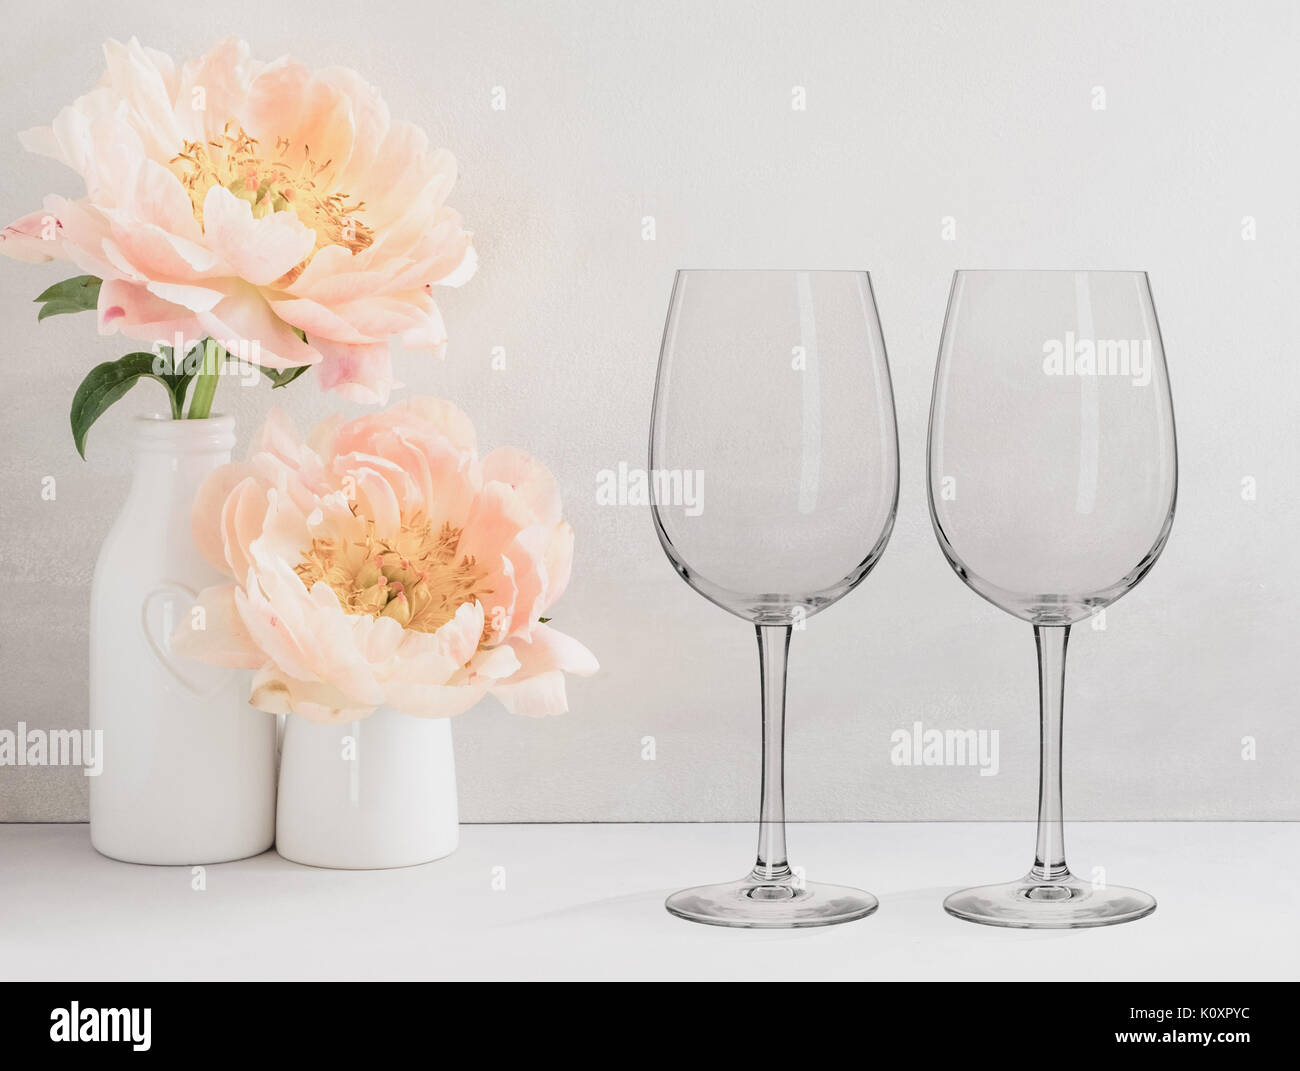 Floral mock-up of 2 wine glasses next to a vase of flowers, perfect for businesses who sell decals, vinyl stickers, just overlay your design - Stock Image